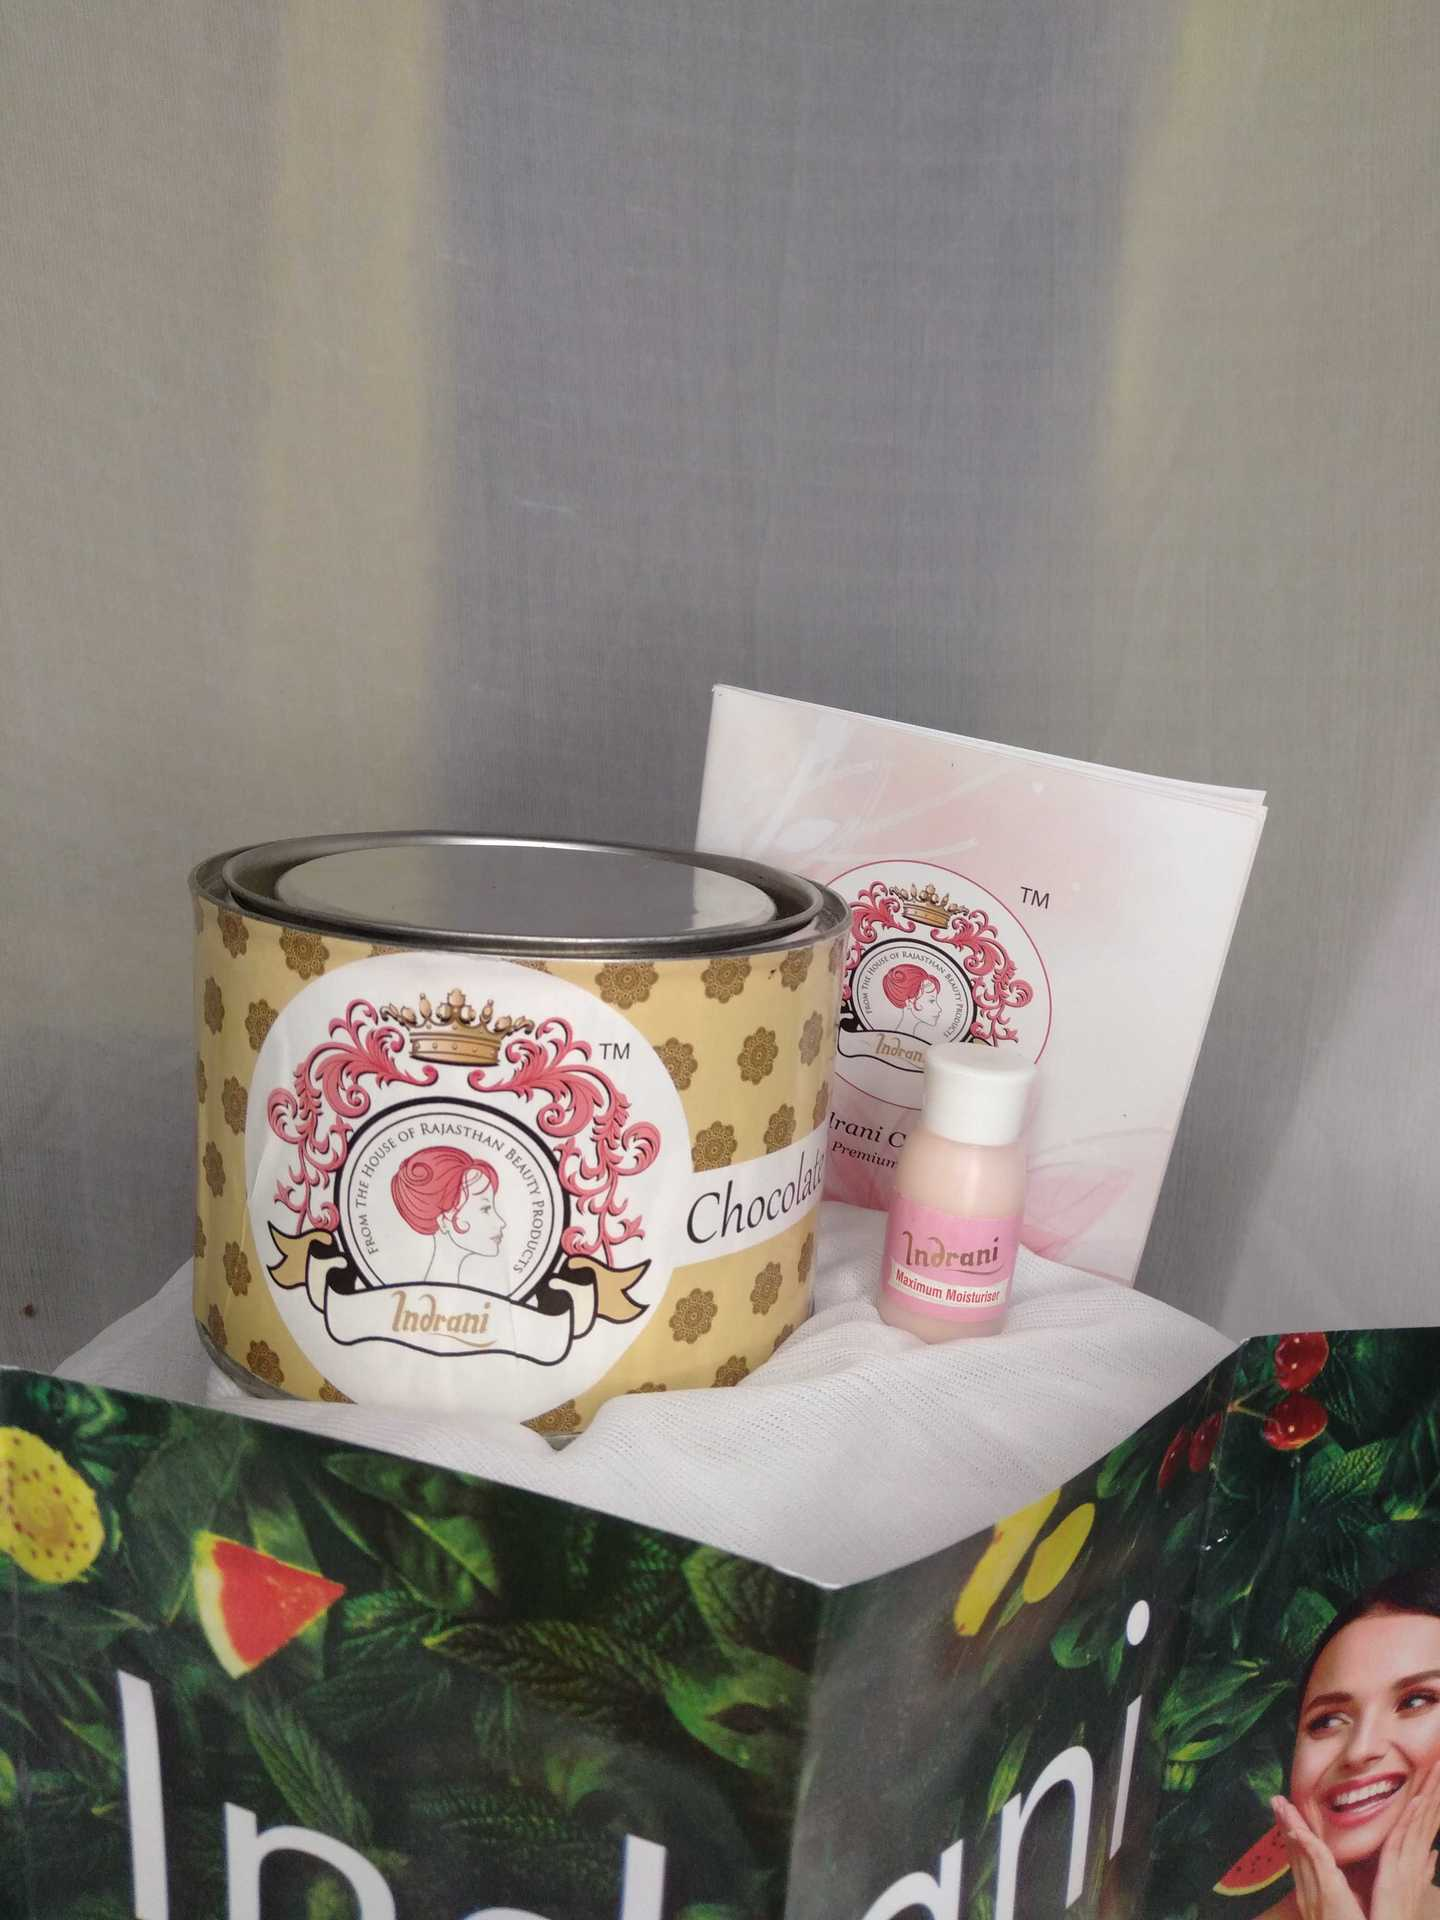 Choclate wax Review- Indrani Cosmetics image